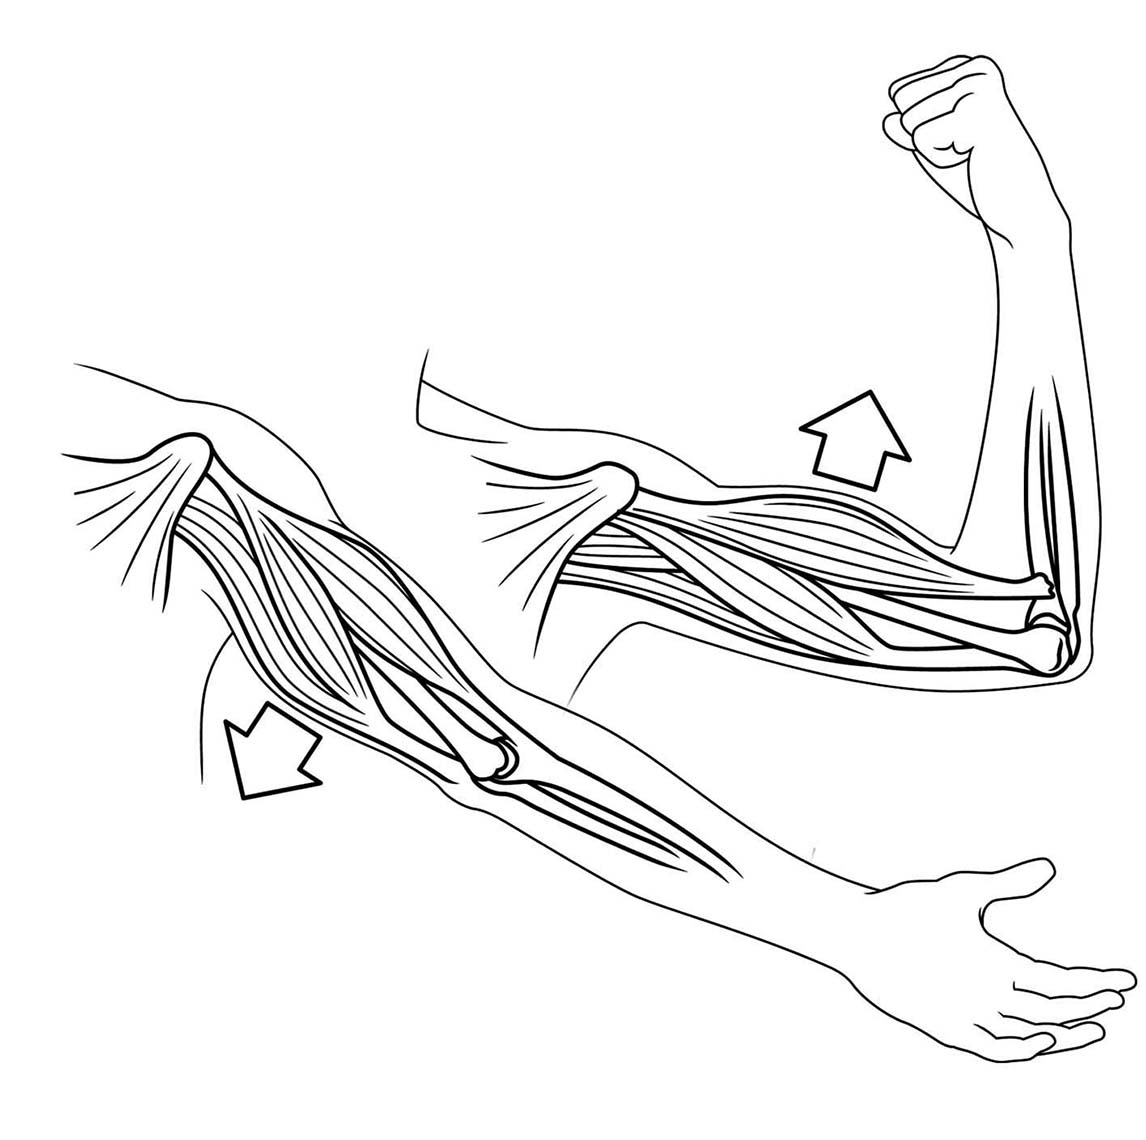 Medical diagram arms